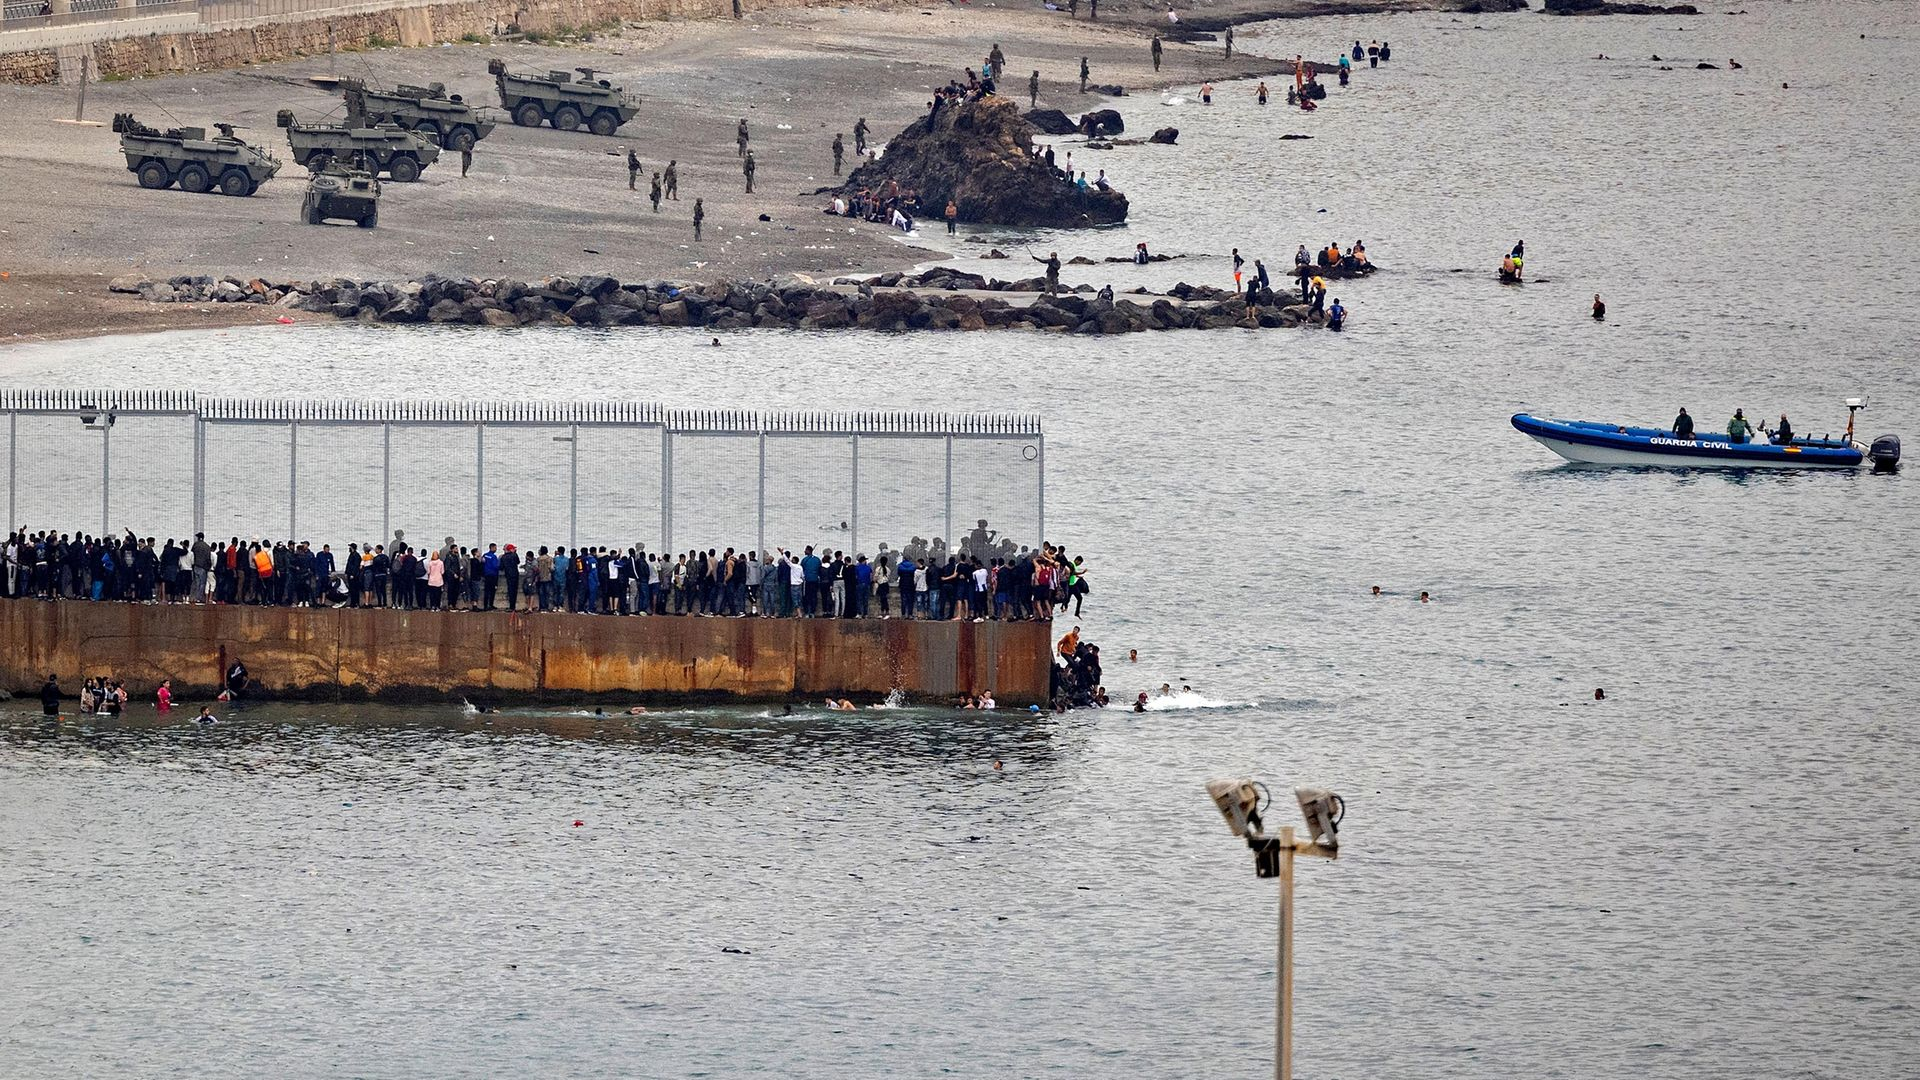 Migrants rally by a border fence to cross from Morocco to Spain's North African enclave of Ceuta, where Spanish troops await - Credit: AFP via Getty Images